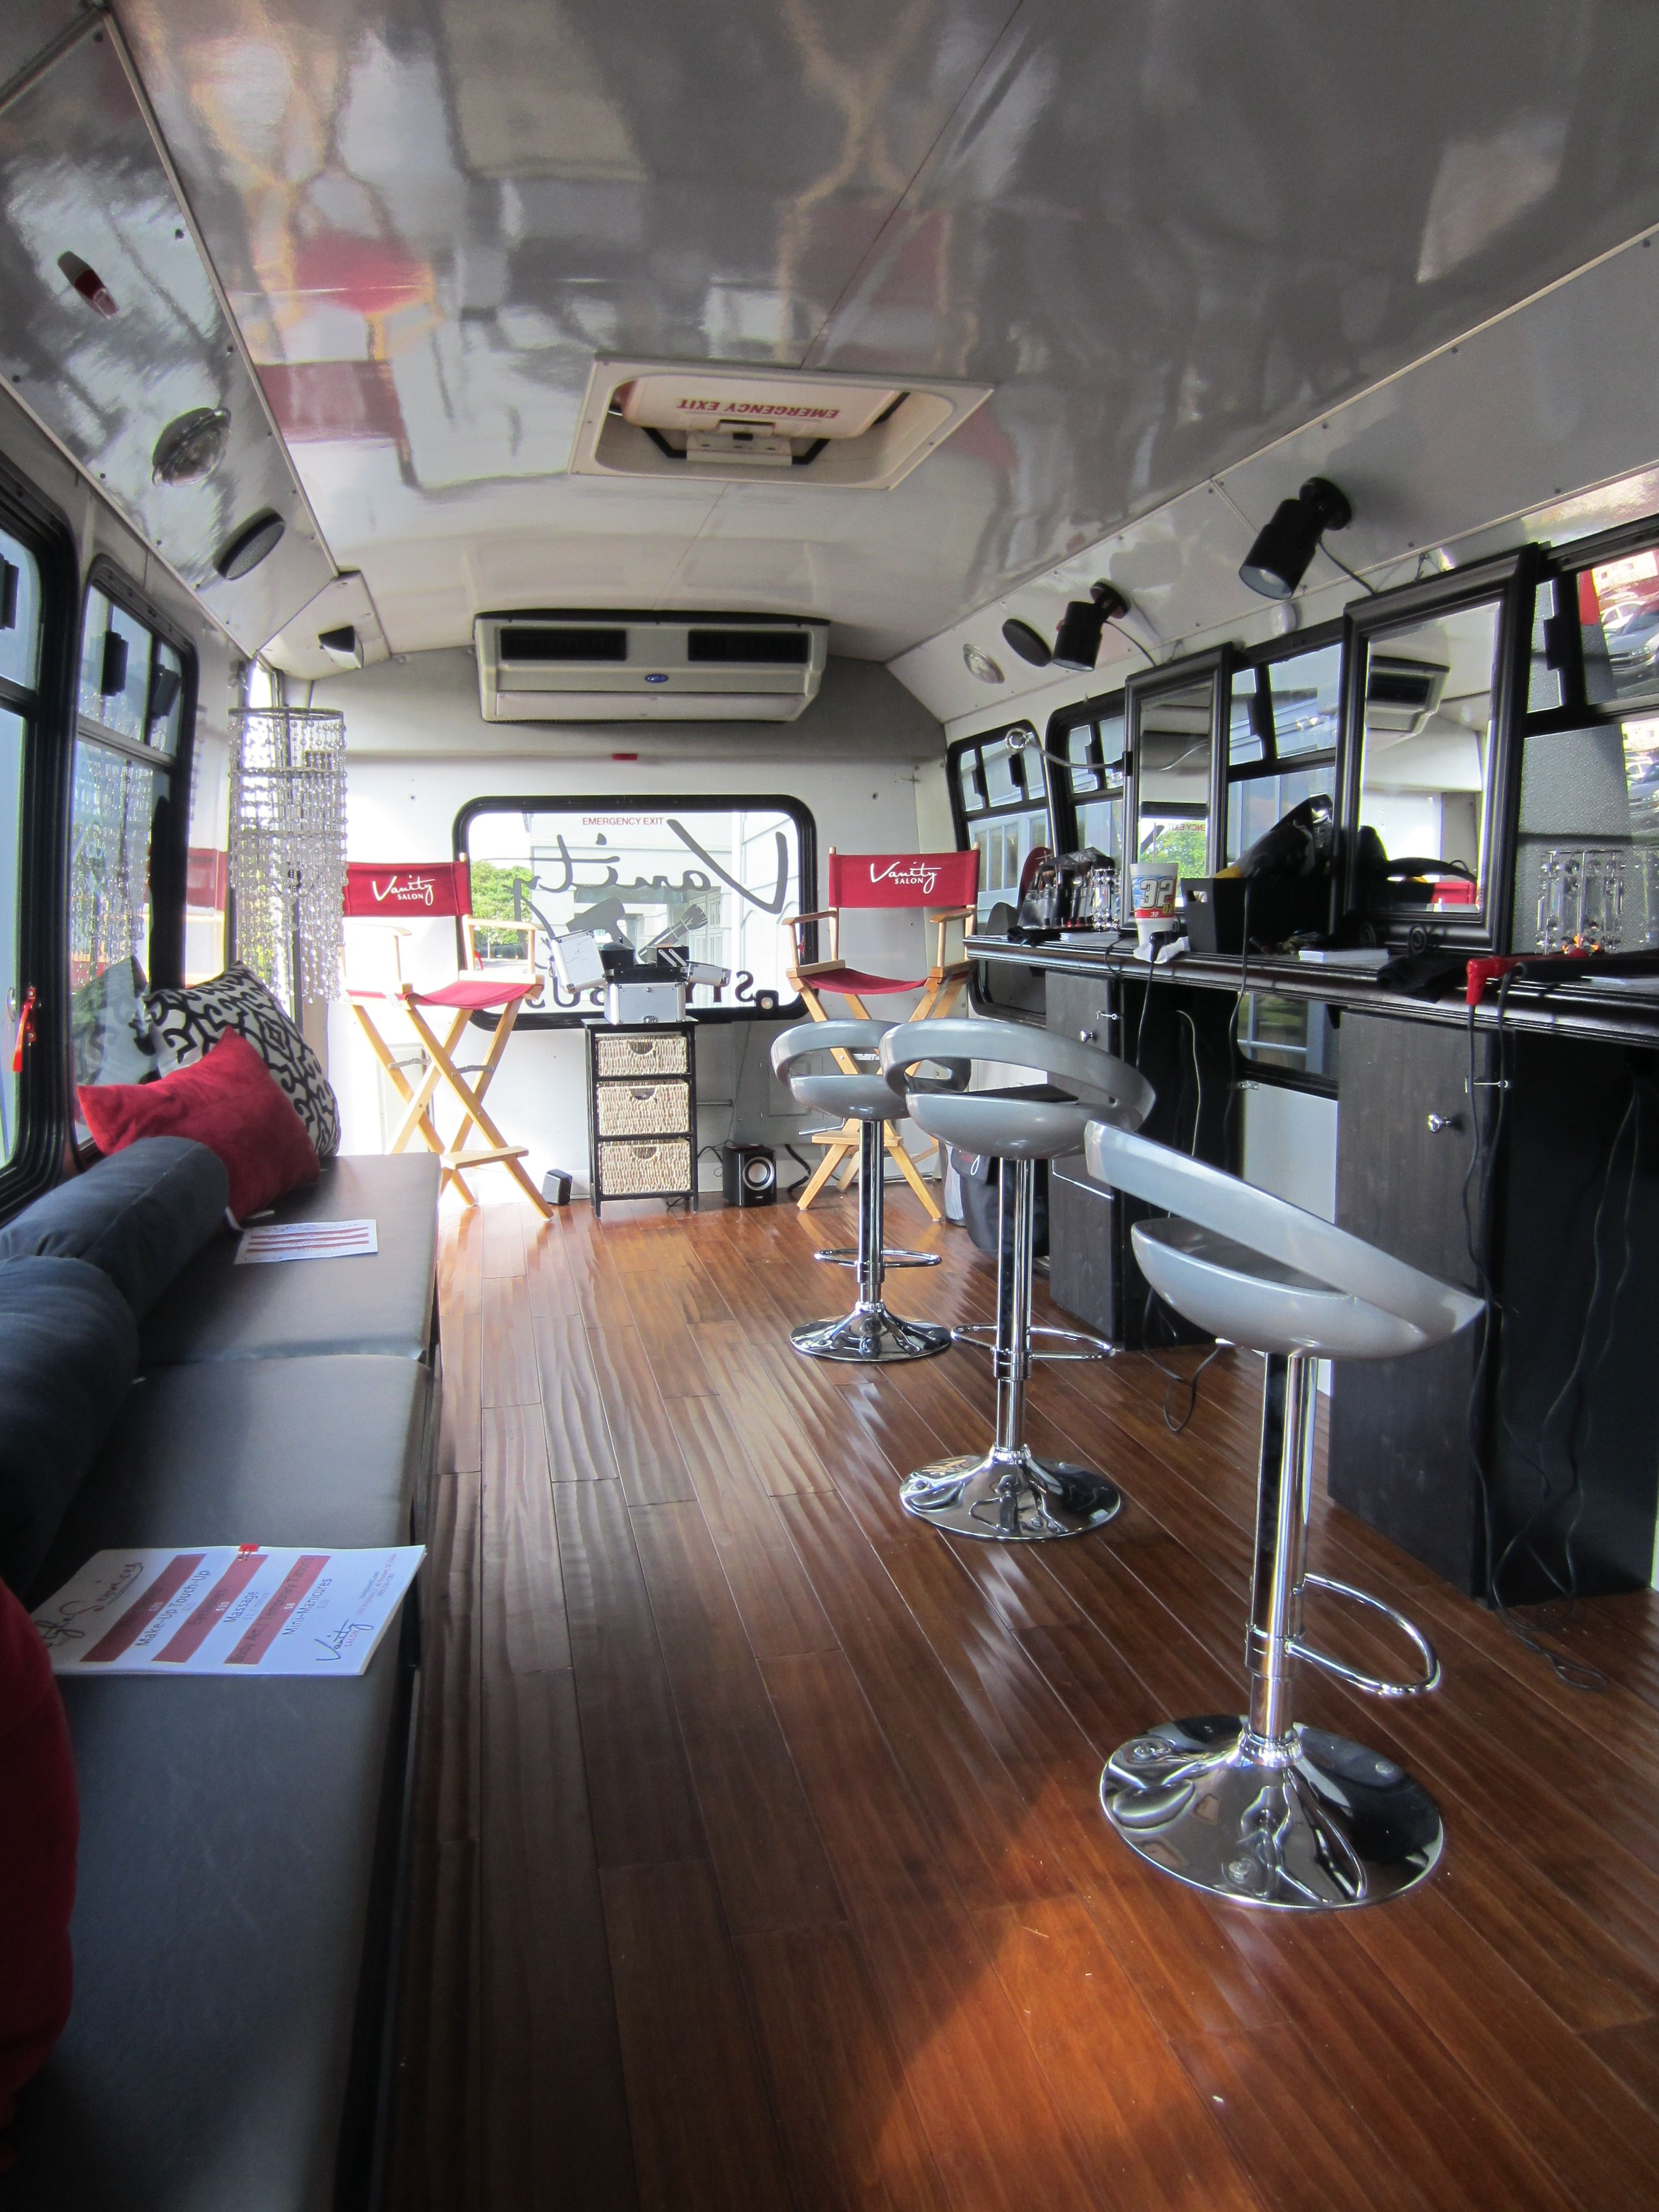 The inside of the vanity salon style bus style bus by for Bus salon marignane